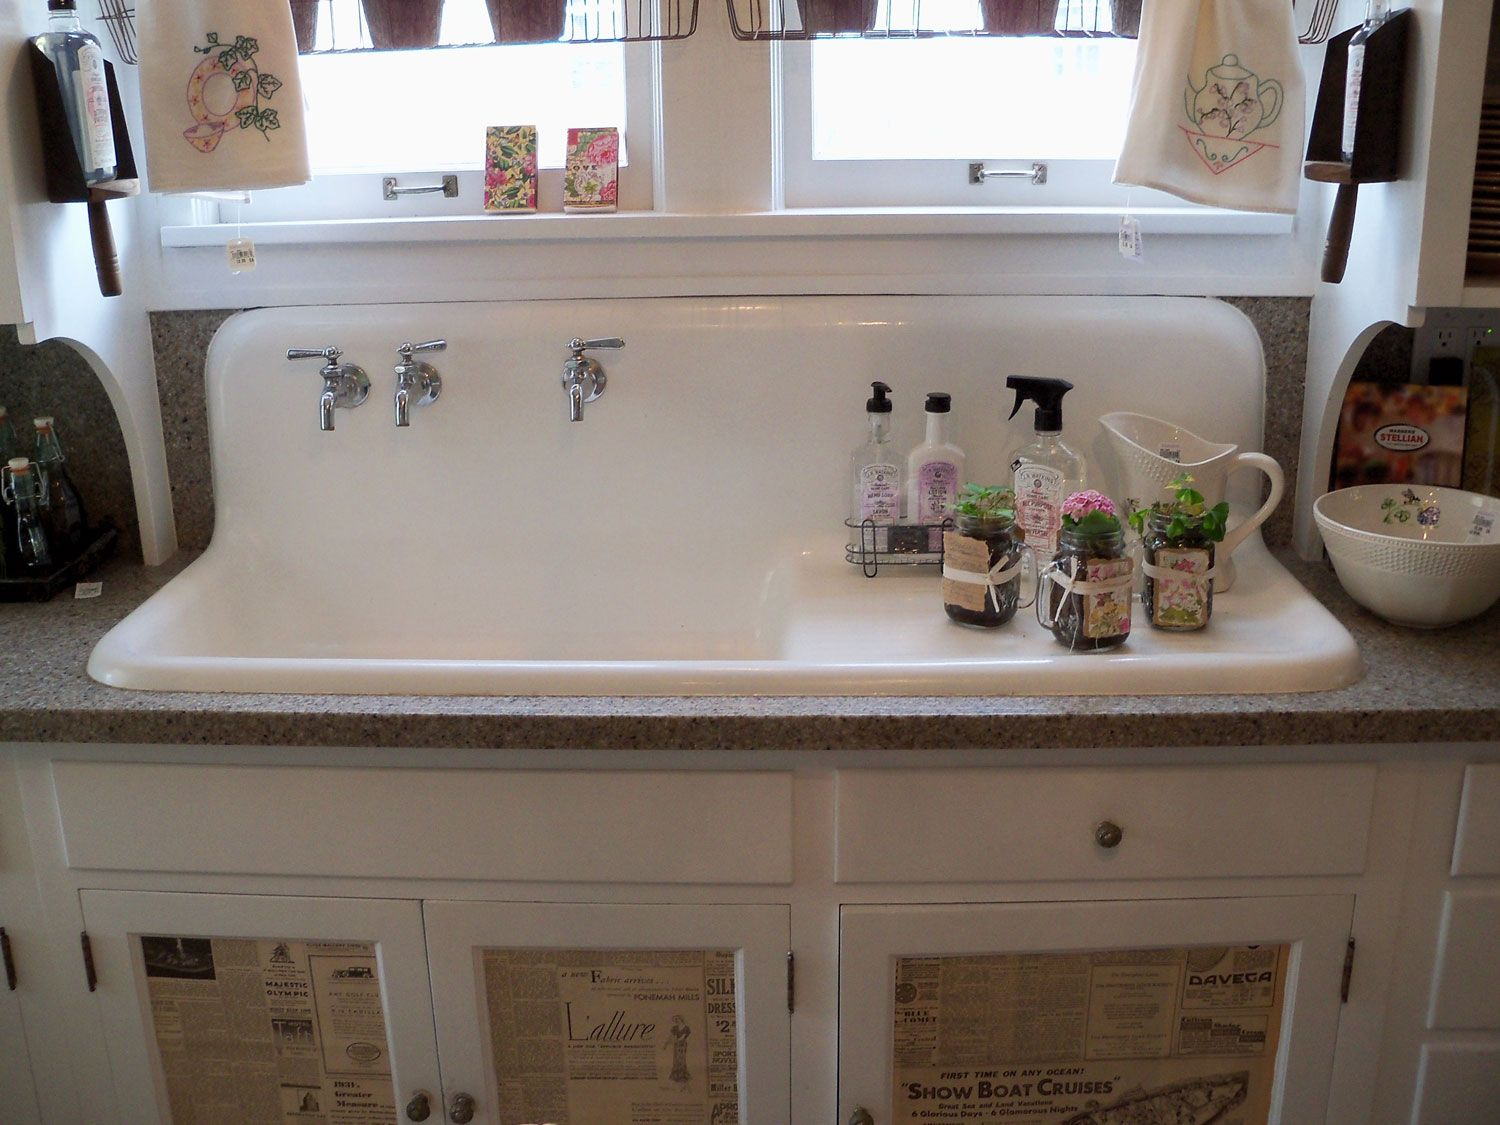 Best 20+ Vintage farmhouse sink ideas on Pinterest | Vintage ...